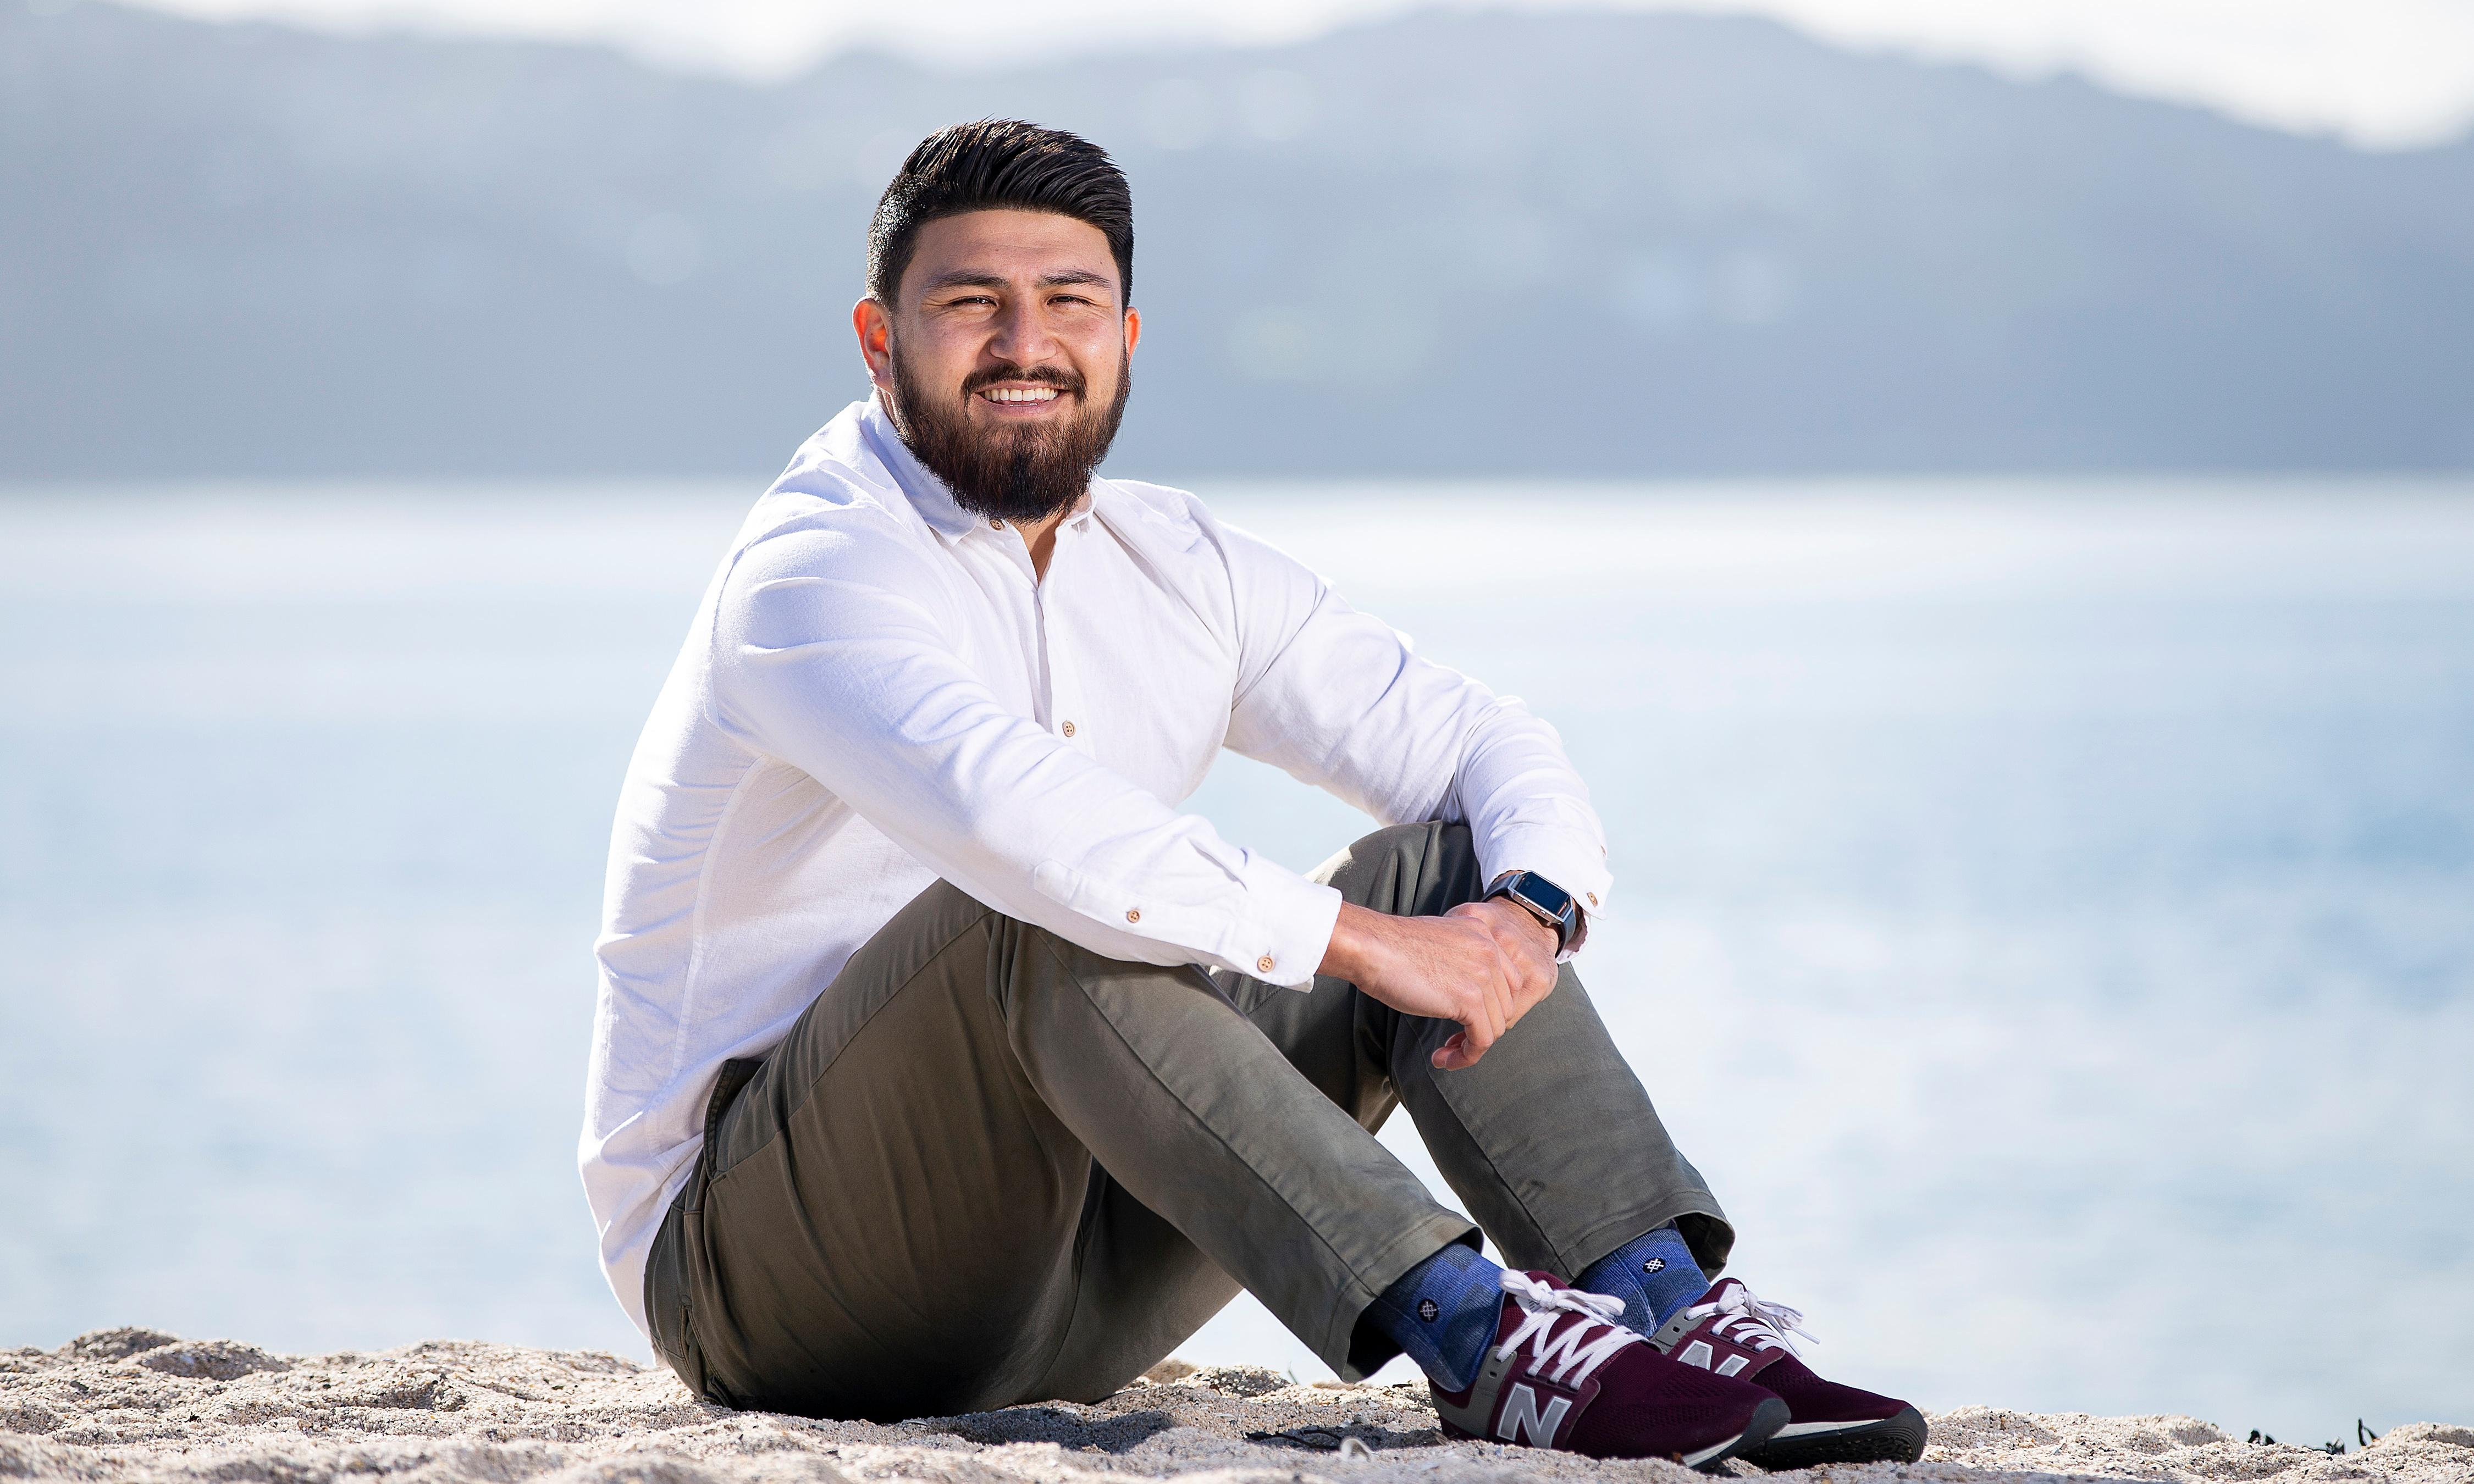 'Not welcome' in Australia: from Tampa refugee to Fulbright scholar, via New Zealand